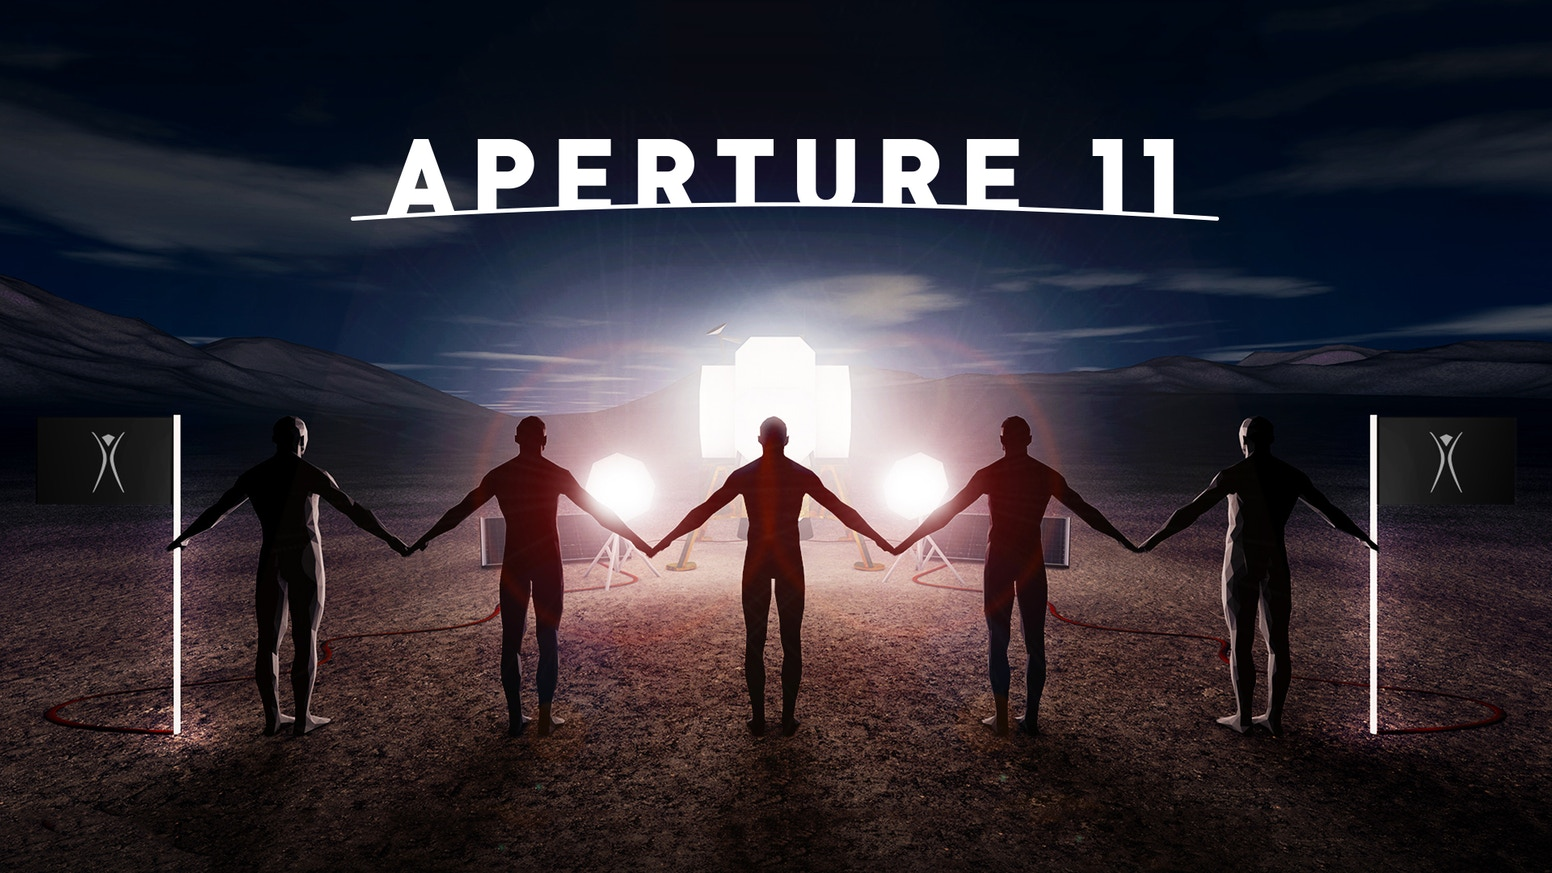 Aperture11 is an interactive & intergalactic photo booth for Burning Man 2017